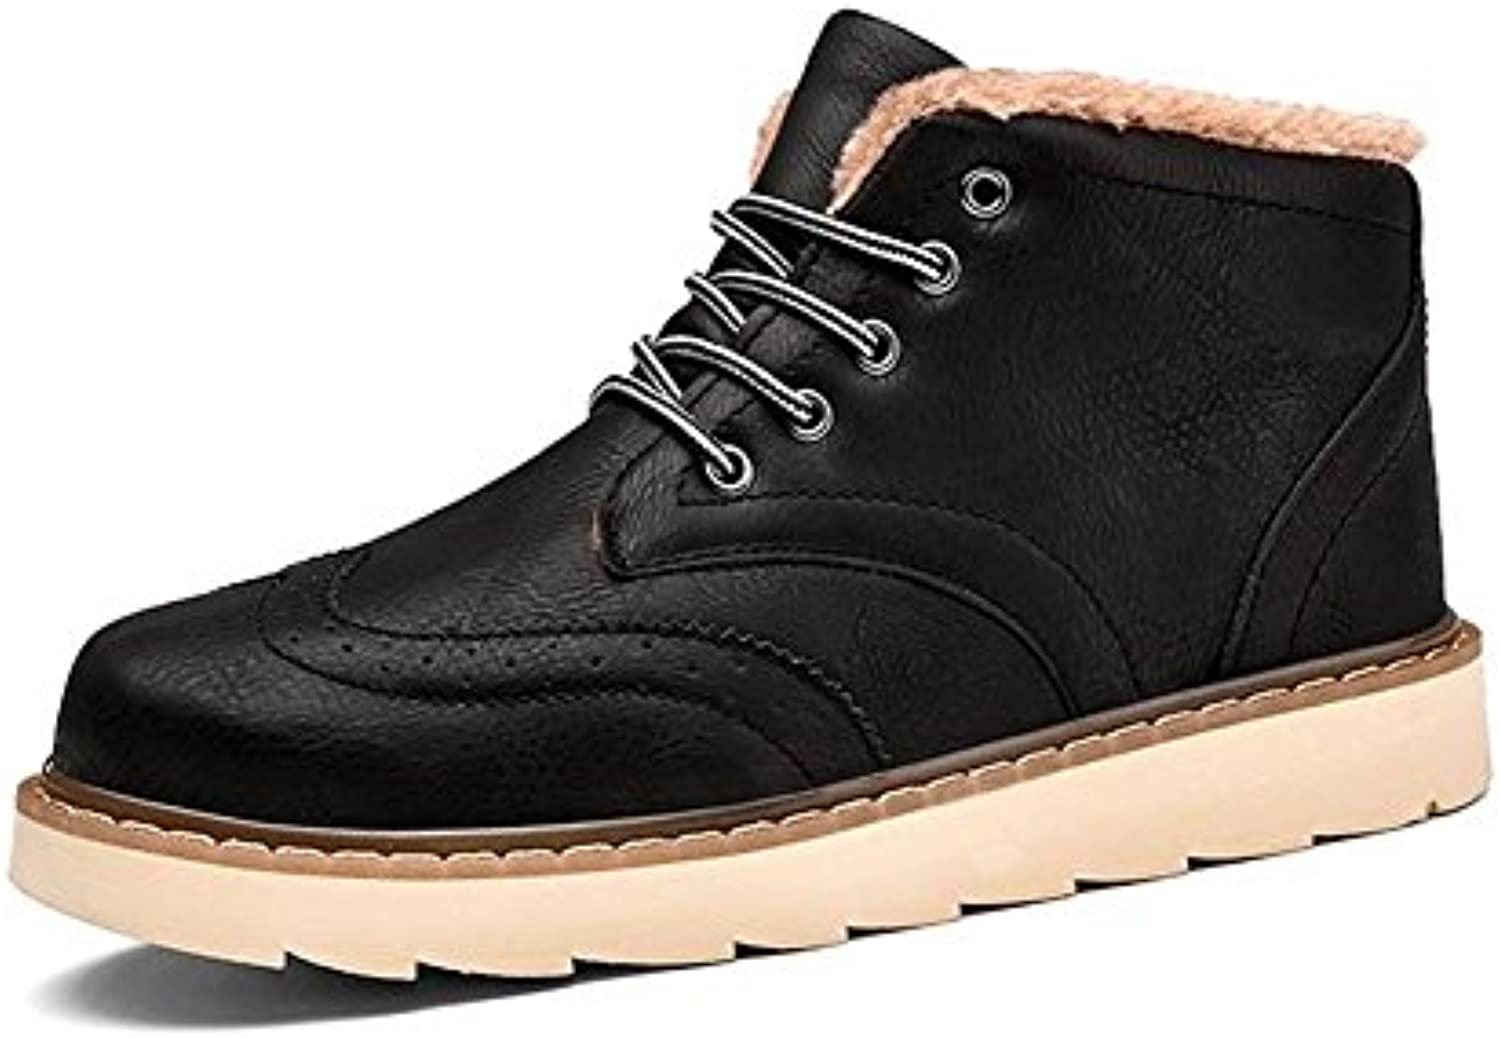 Winter HerrenStiefel und gro?e ModeTrendRetroKlassiker   47   black